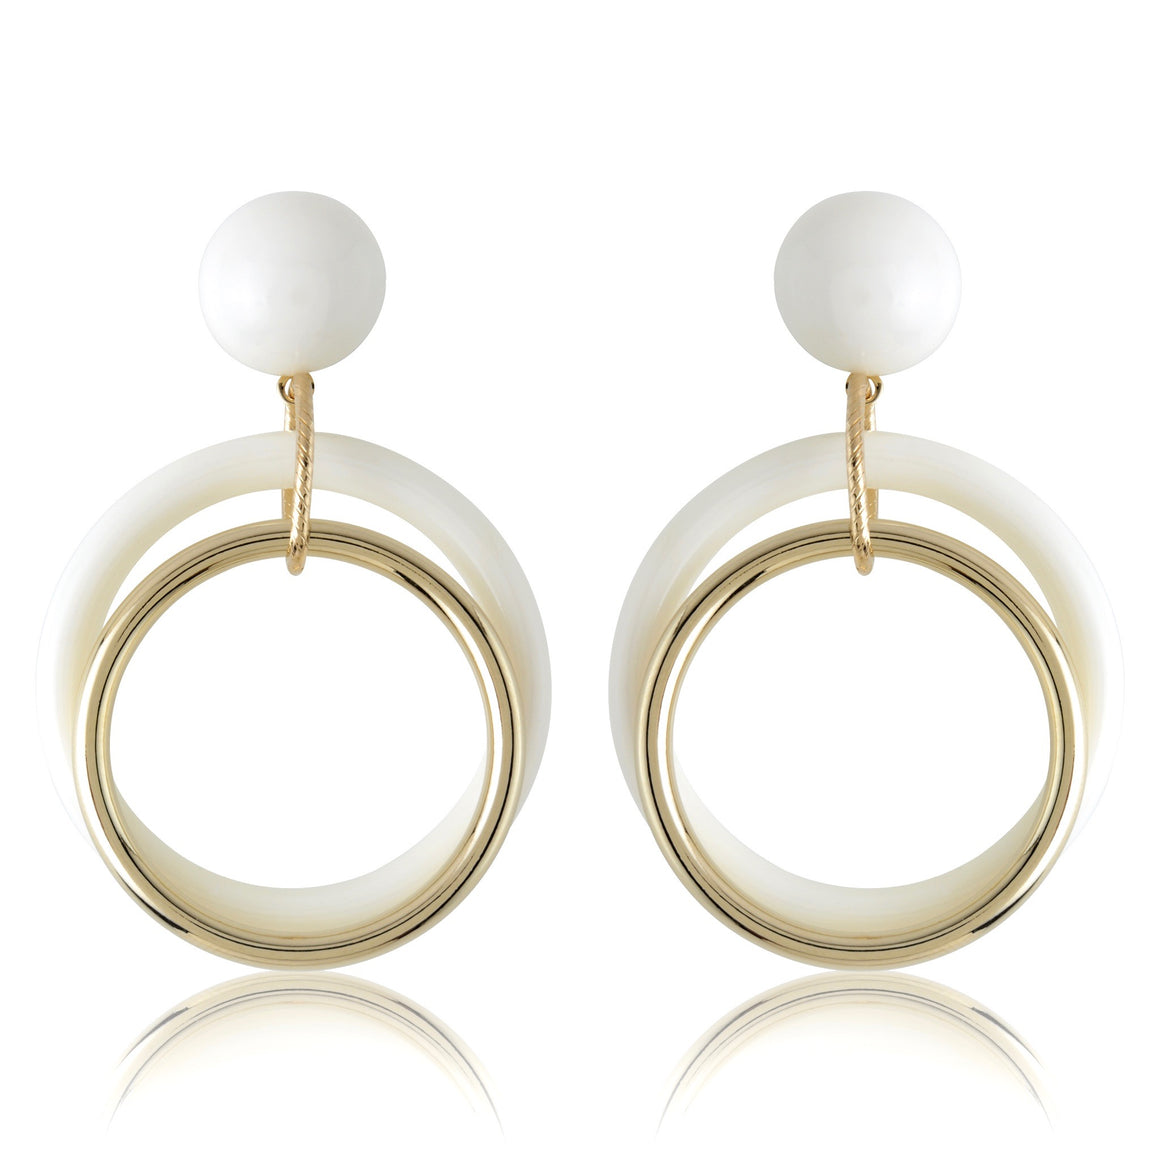 White & Gold Stud + Concentric Earrings